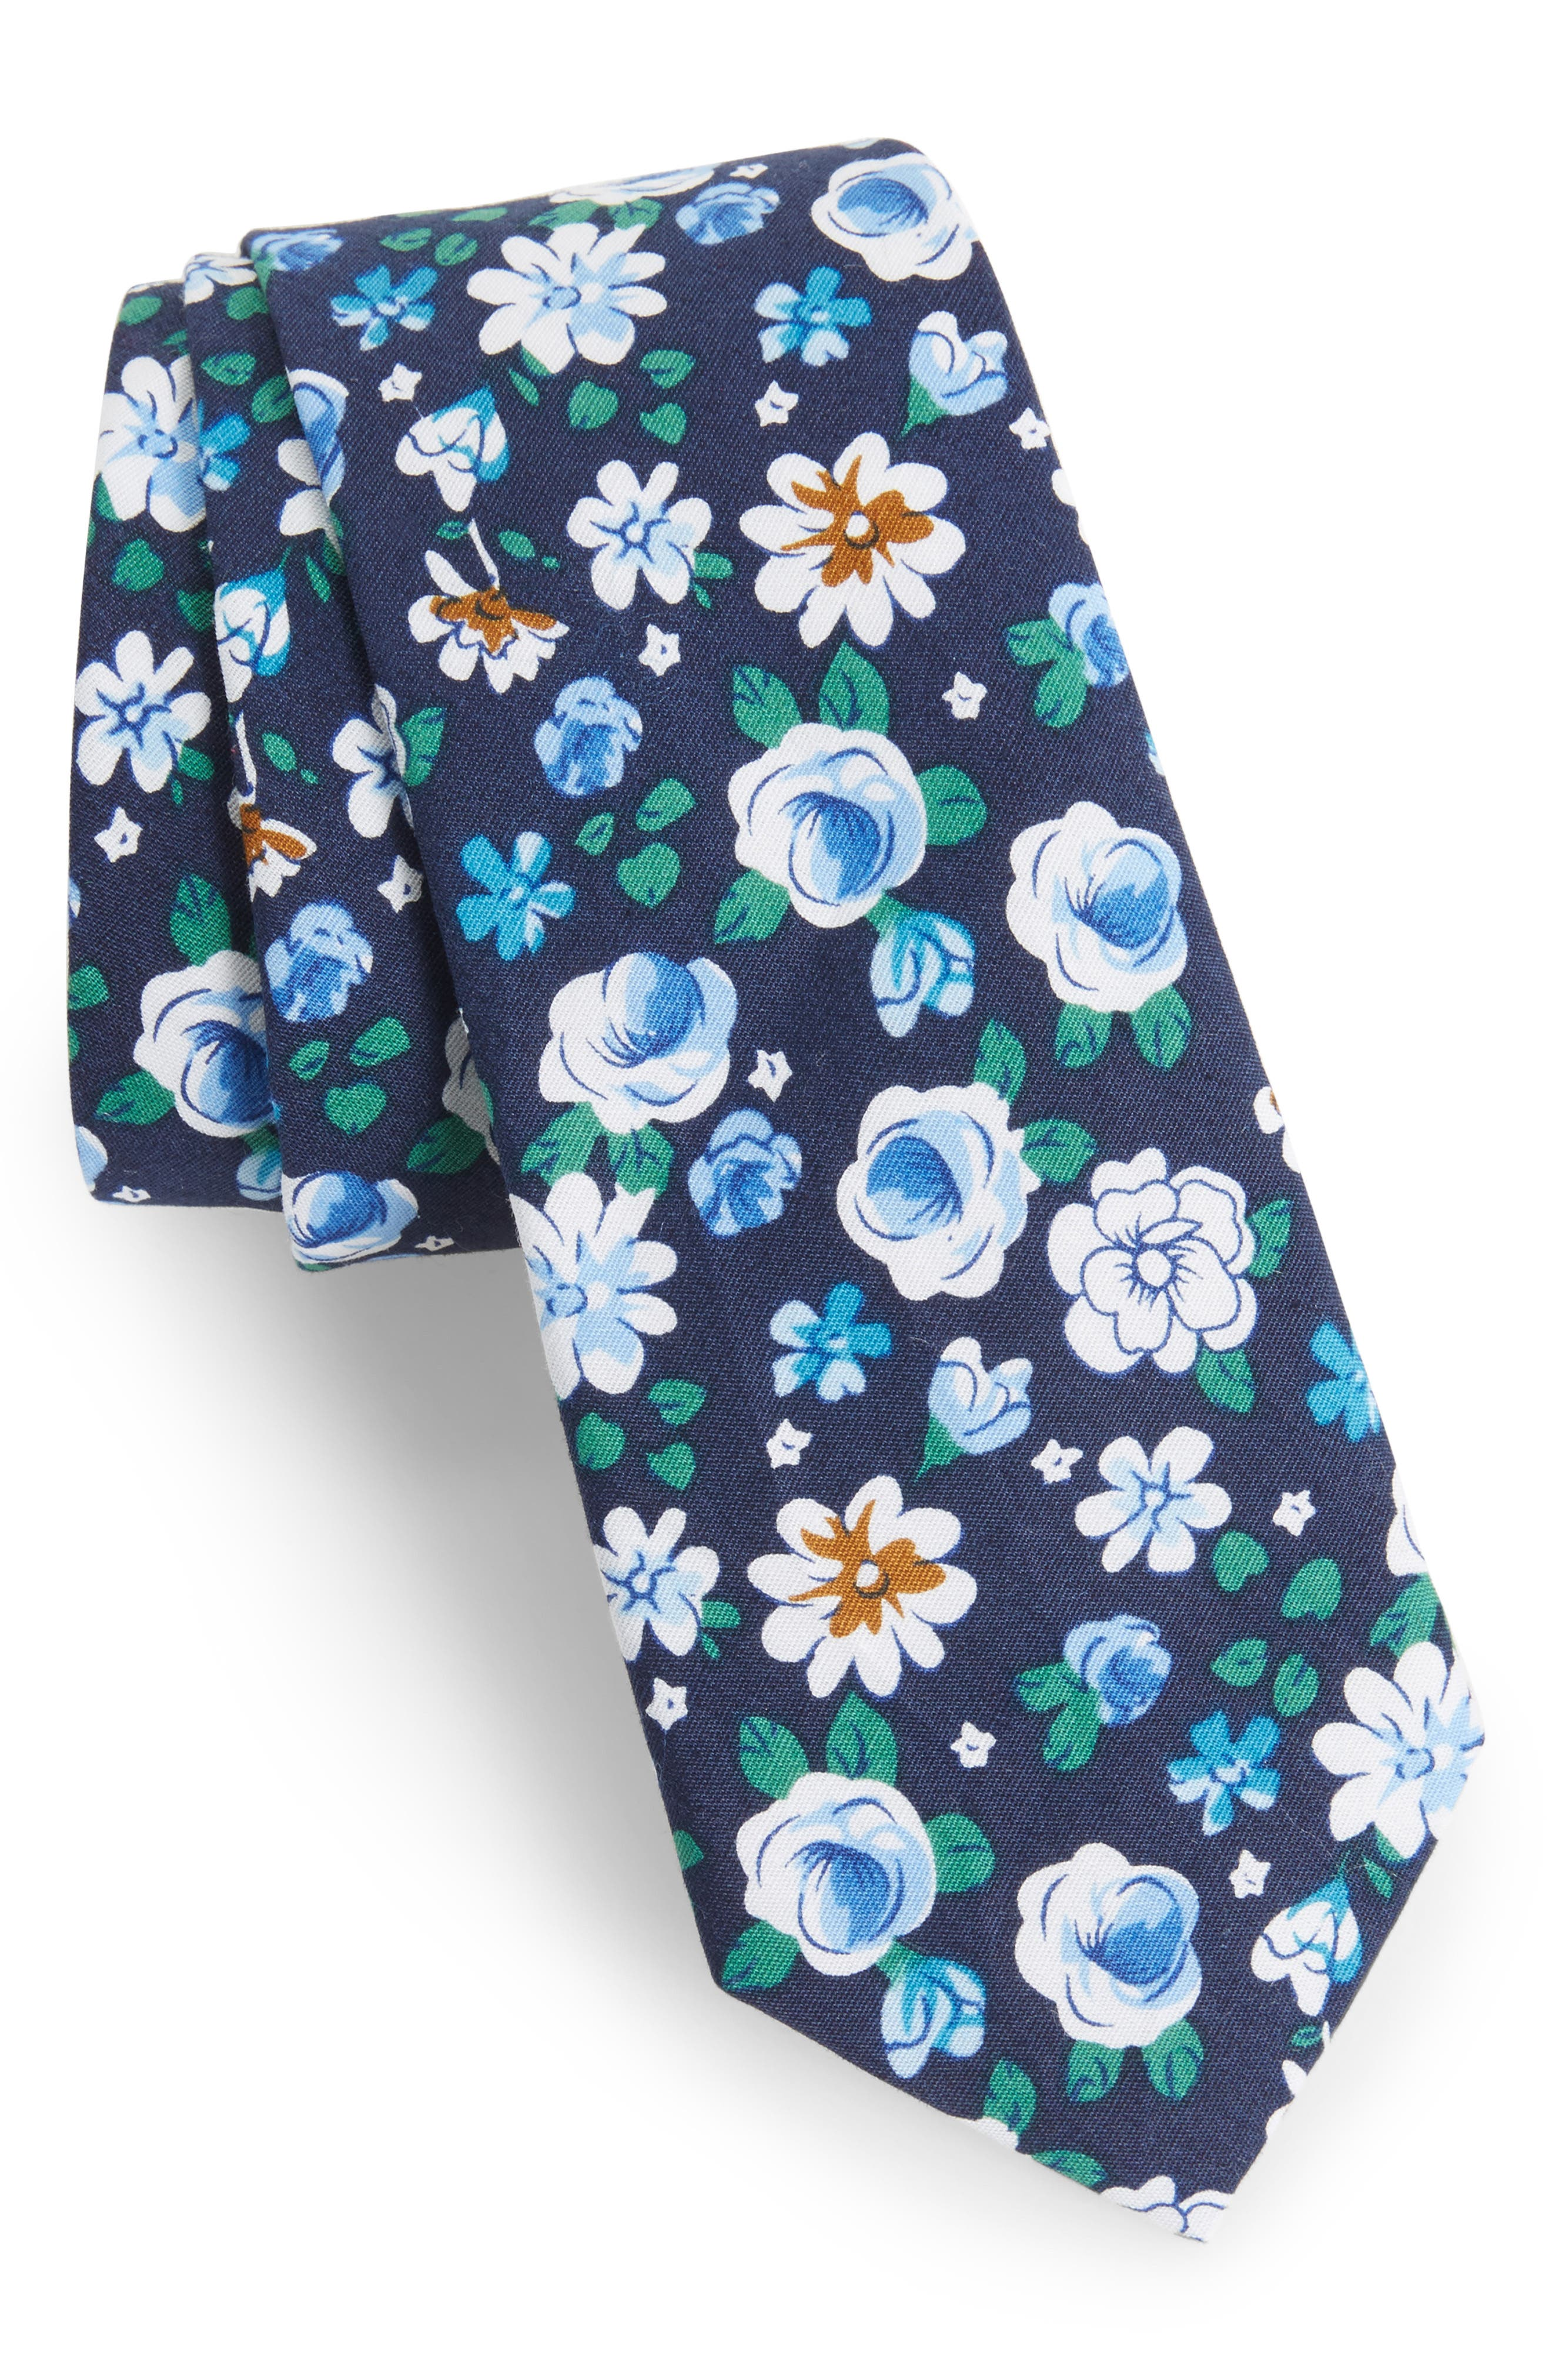 Image of NORDSTROM MEN'S SHOP Frenso Floral Cotton Skinny Tie